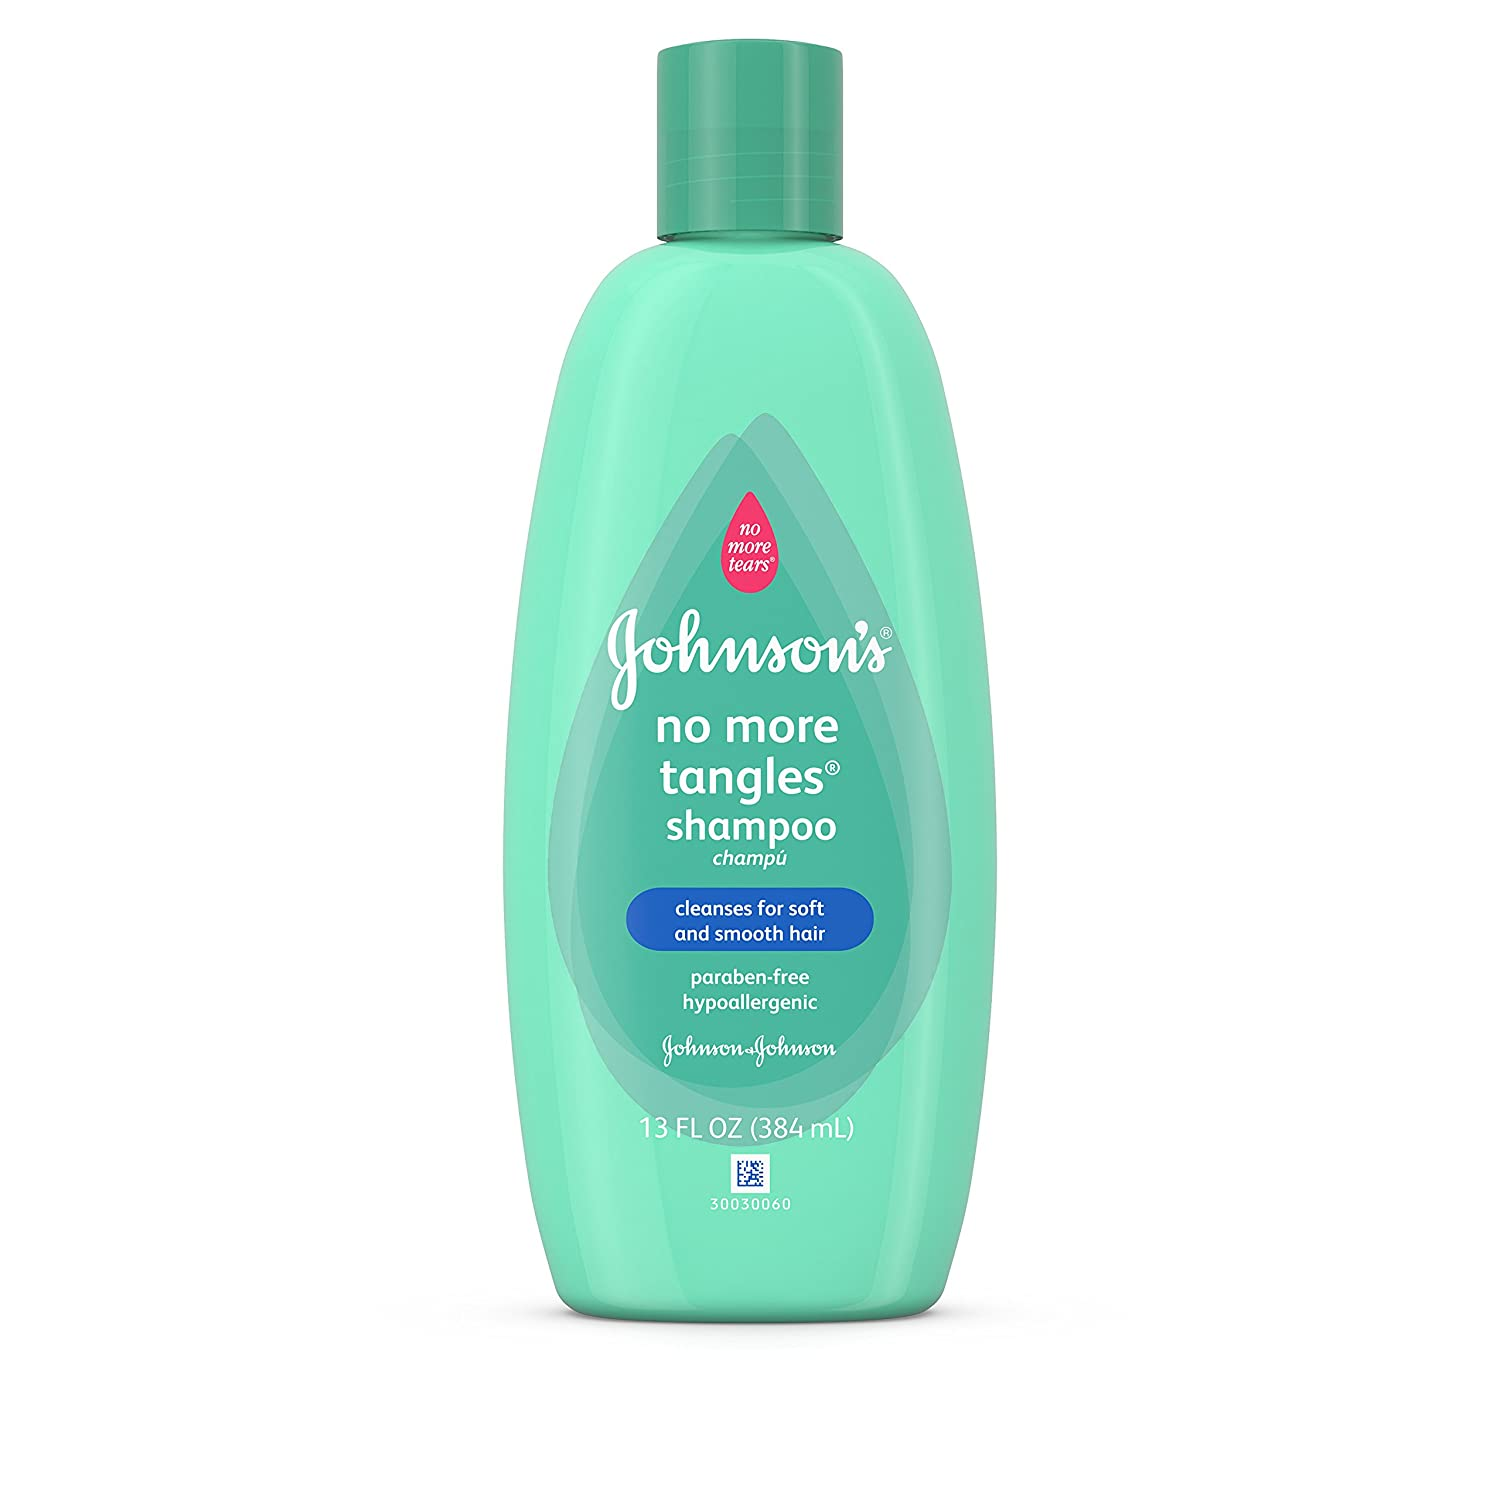 Johnsons Baby No More Tears/Tangles Shampoo Conditioner, Thin/Straight Hair, 13 Ounce J&J CONSUMER INC JJ-160